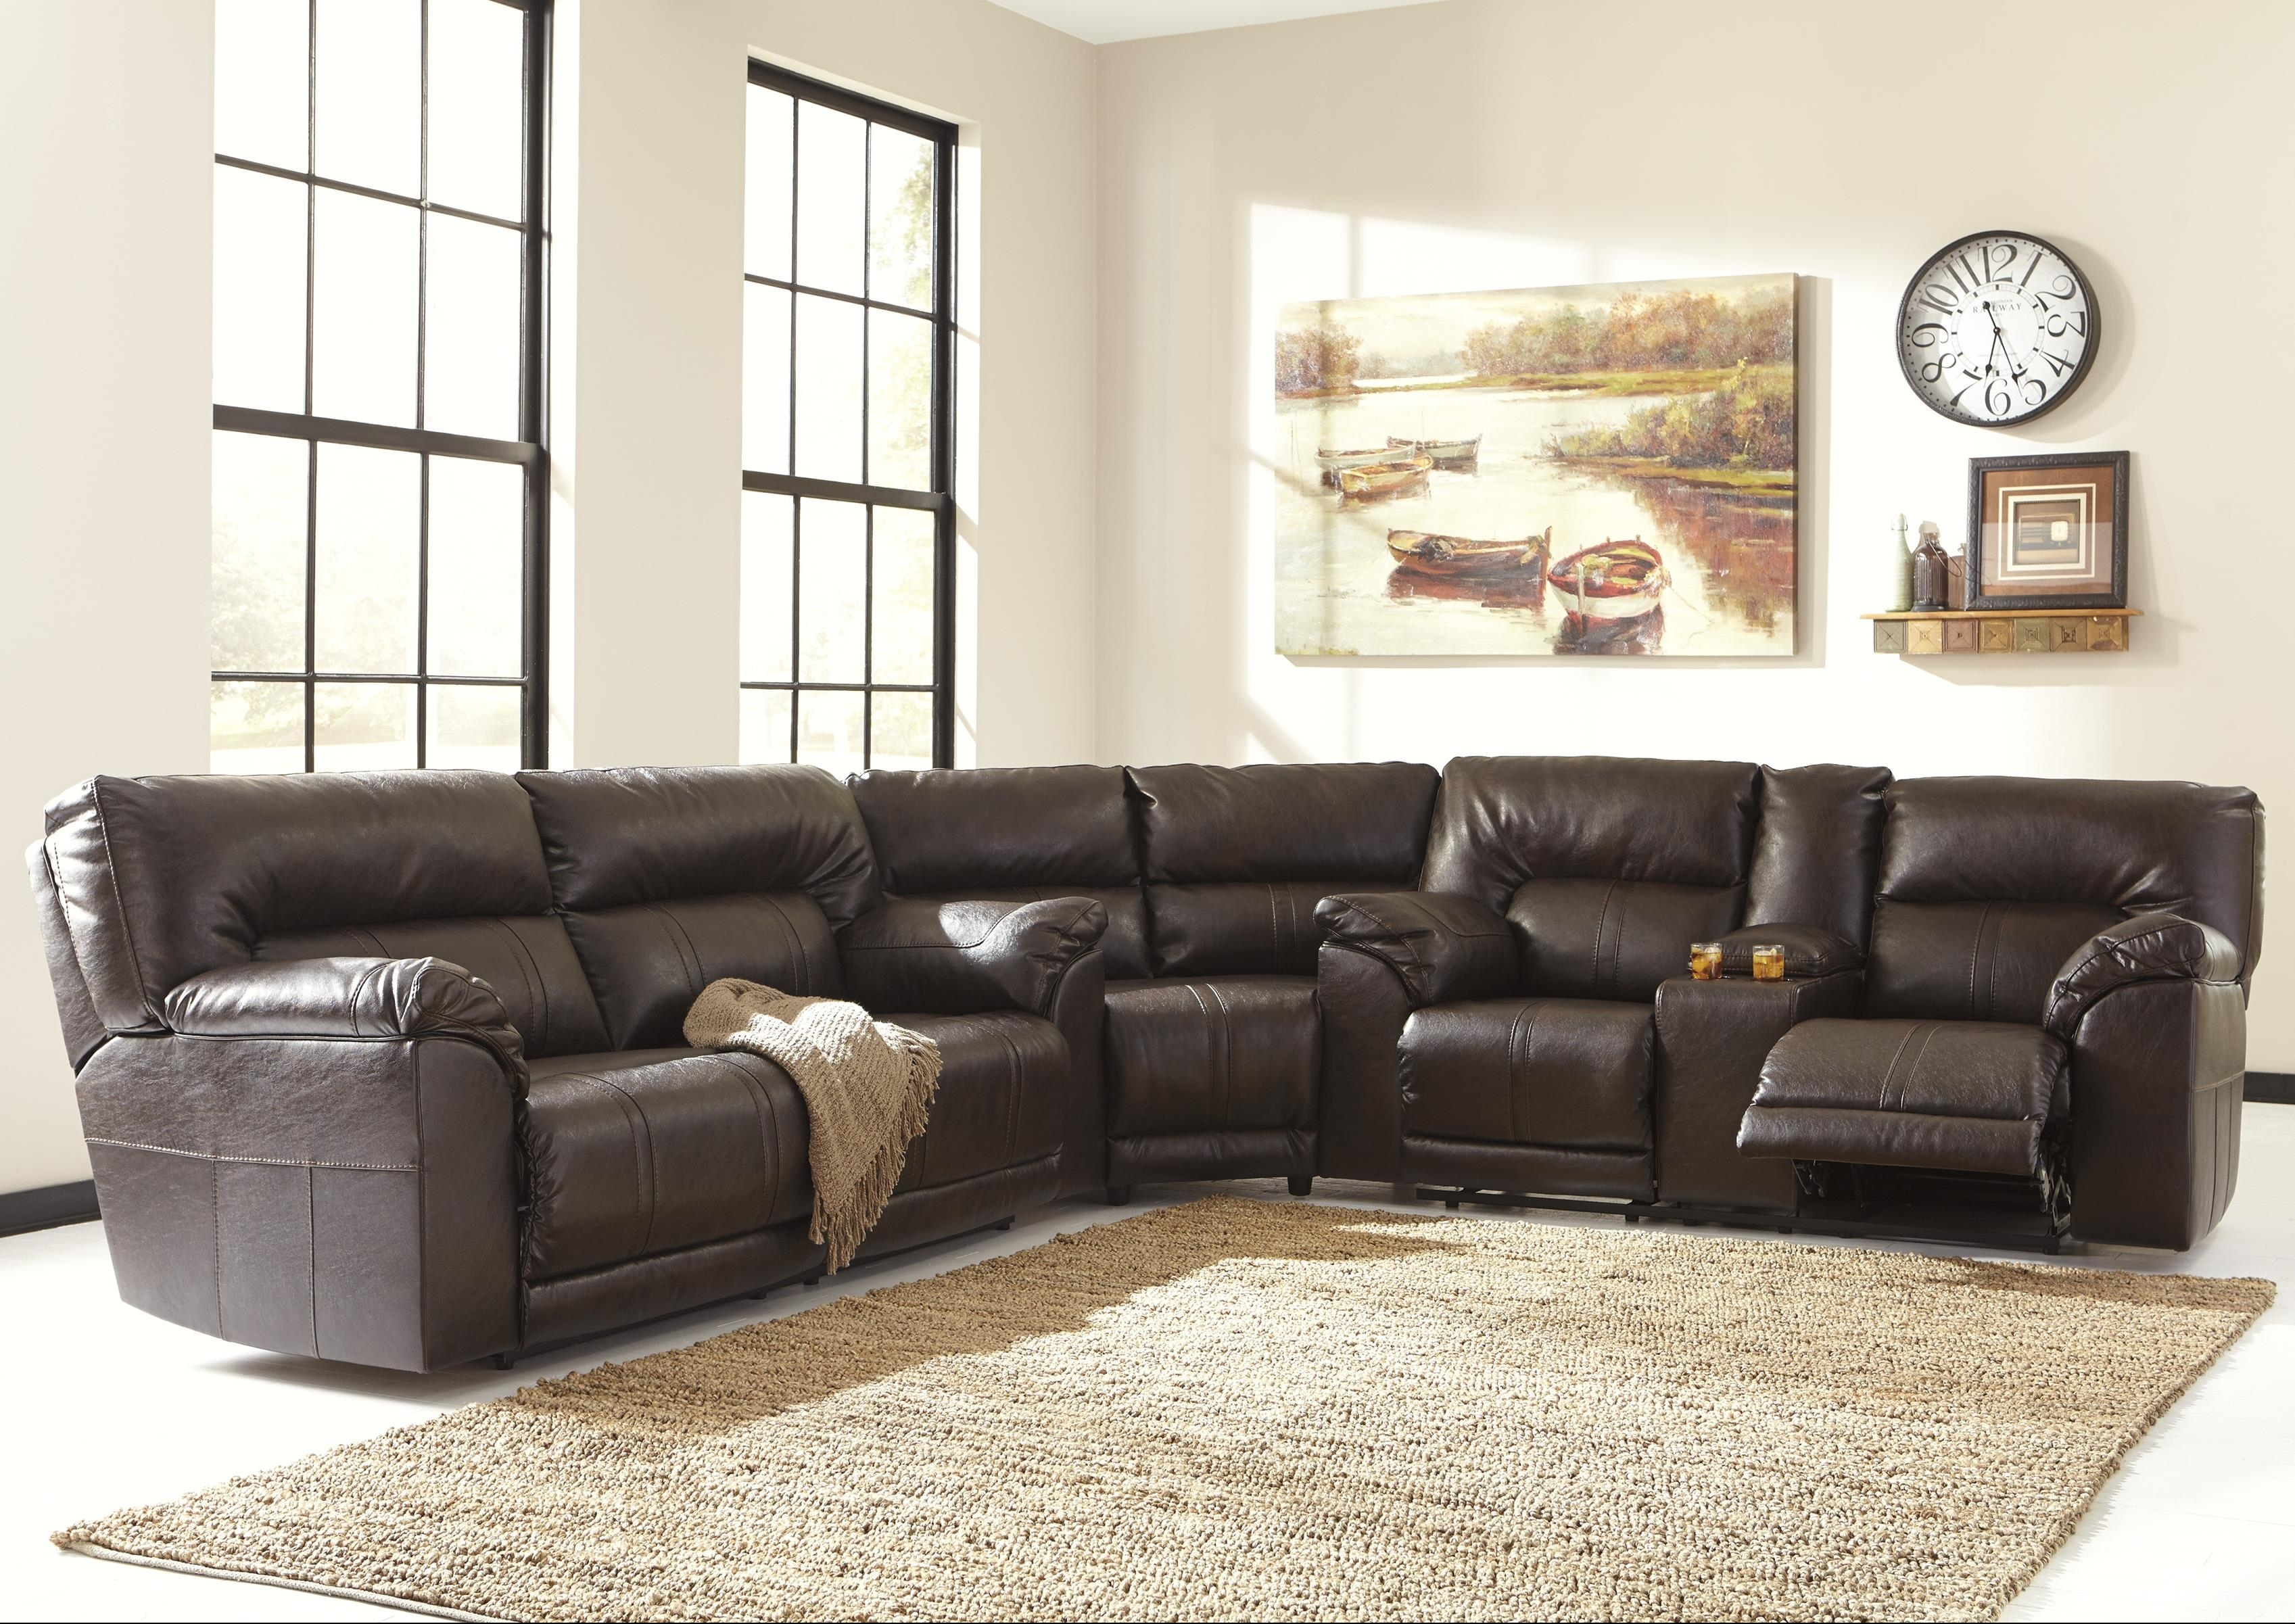 Benchcraftashley Barrettsville Durablend® 3 Piece Reclining Pertaining To Sectional Sofas At Birmingham Al (View 2 of 15)